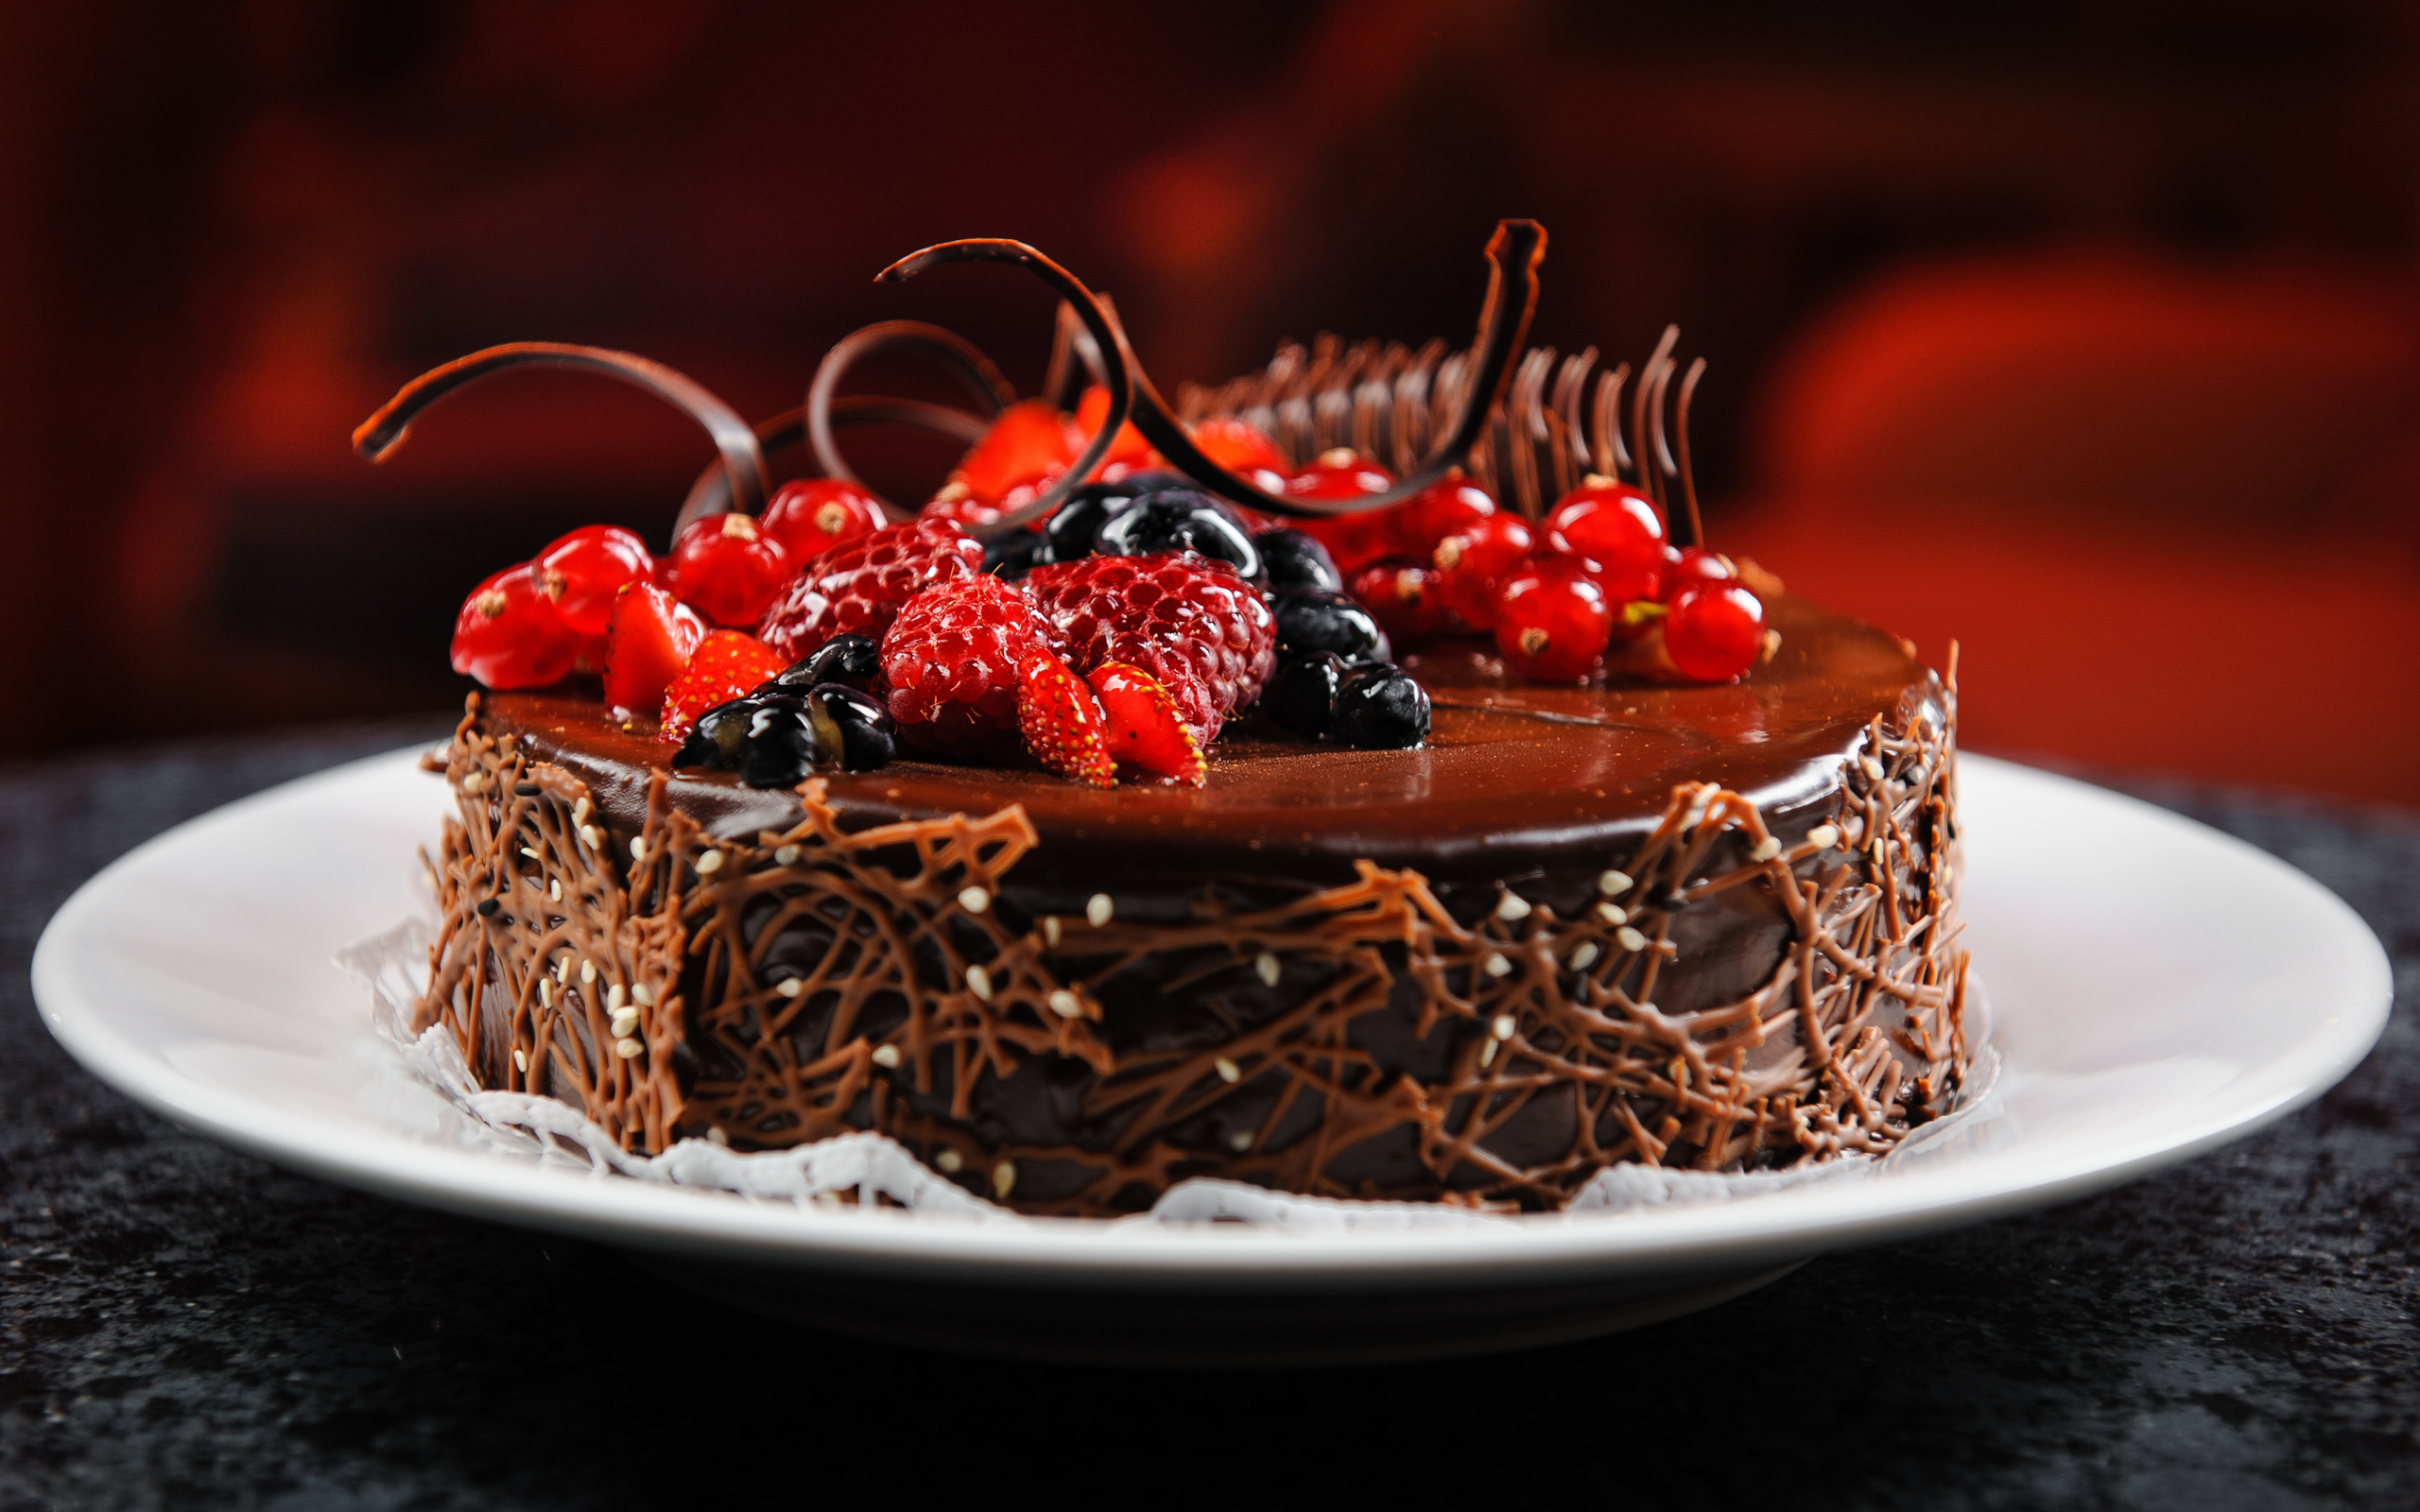 Cake HD Wallpaper